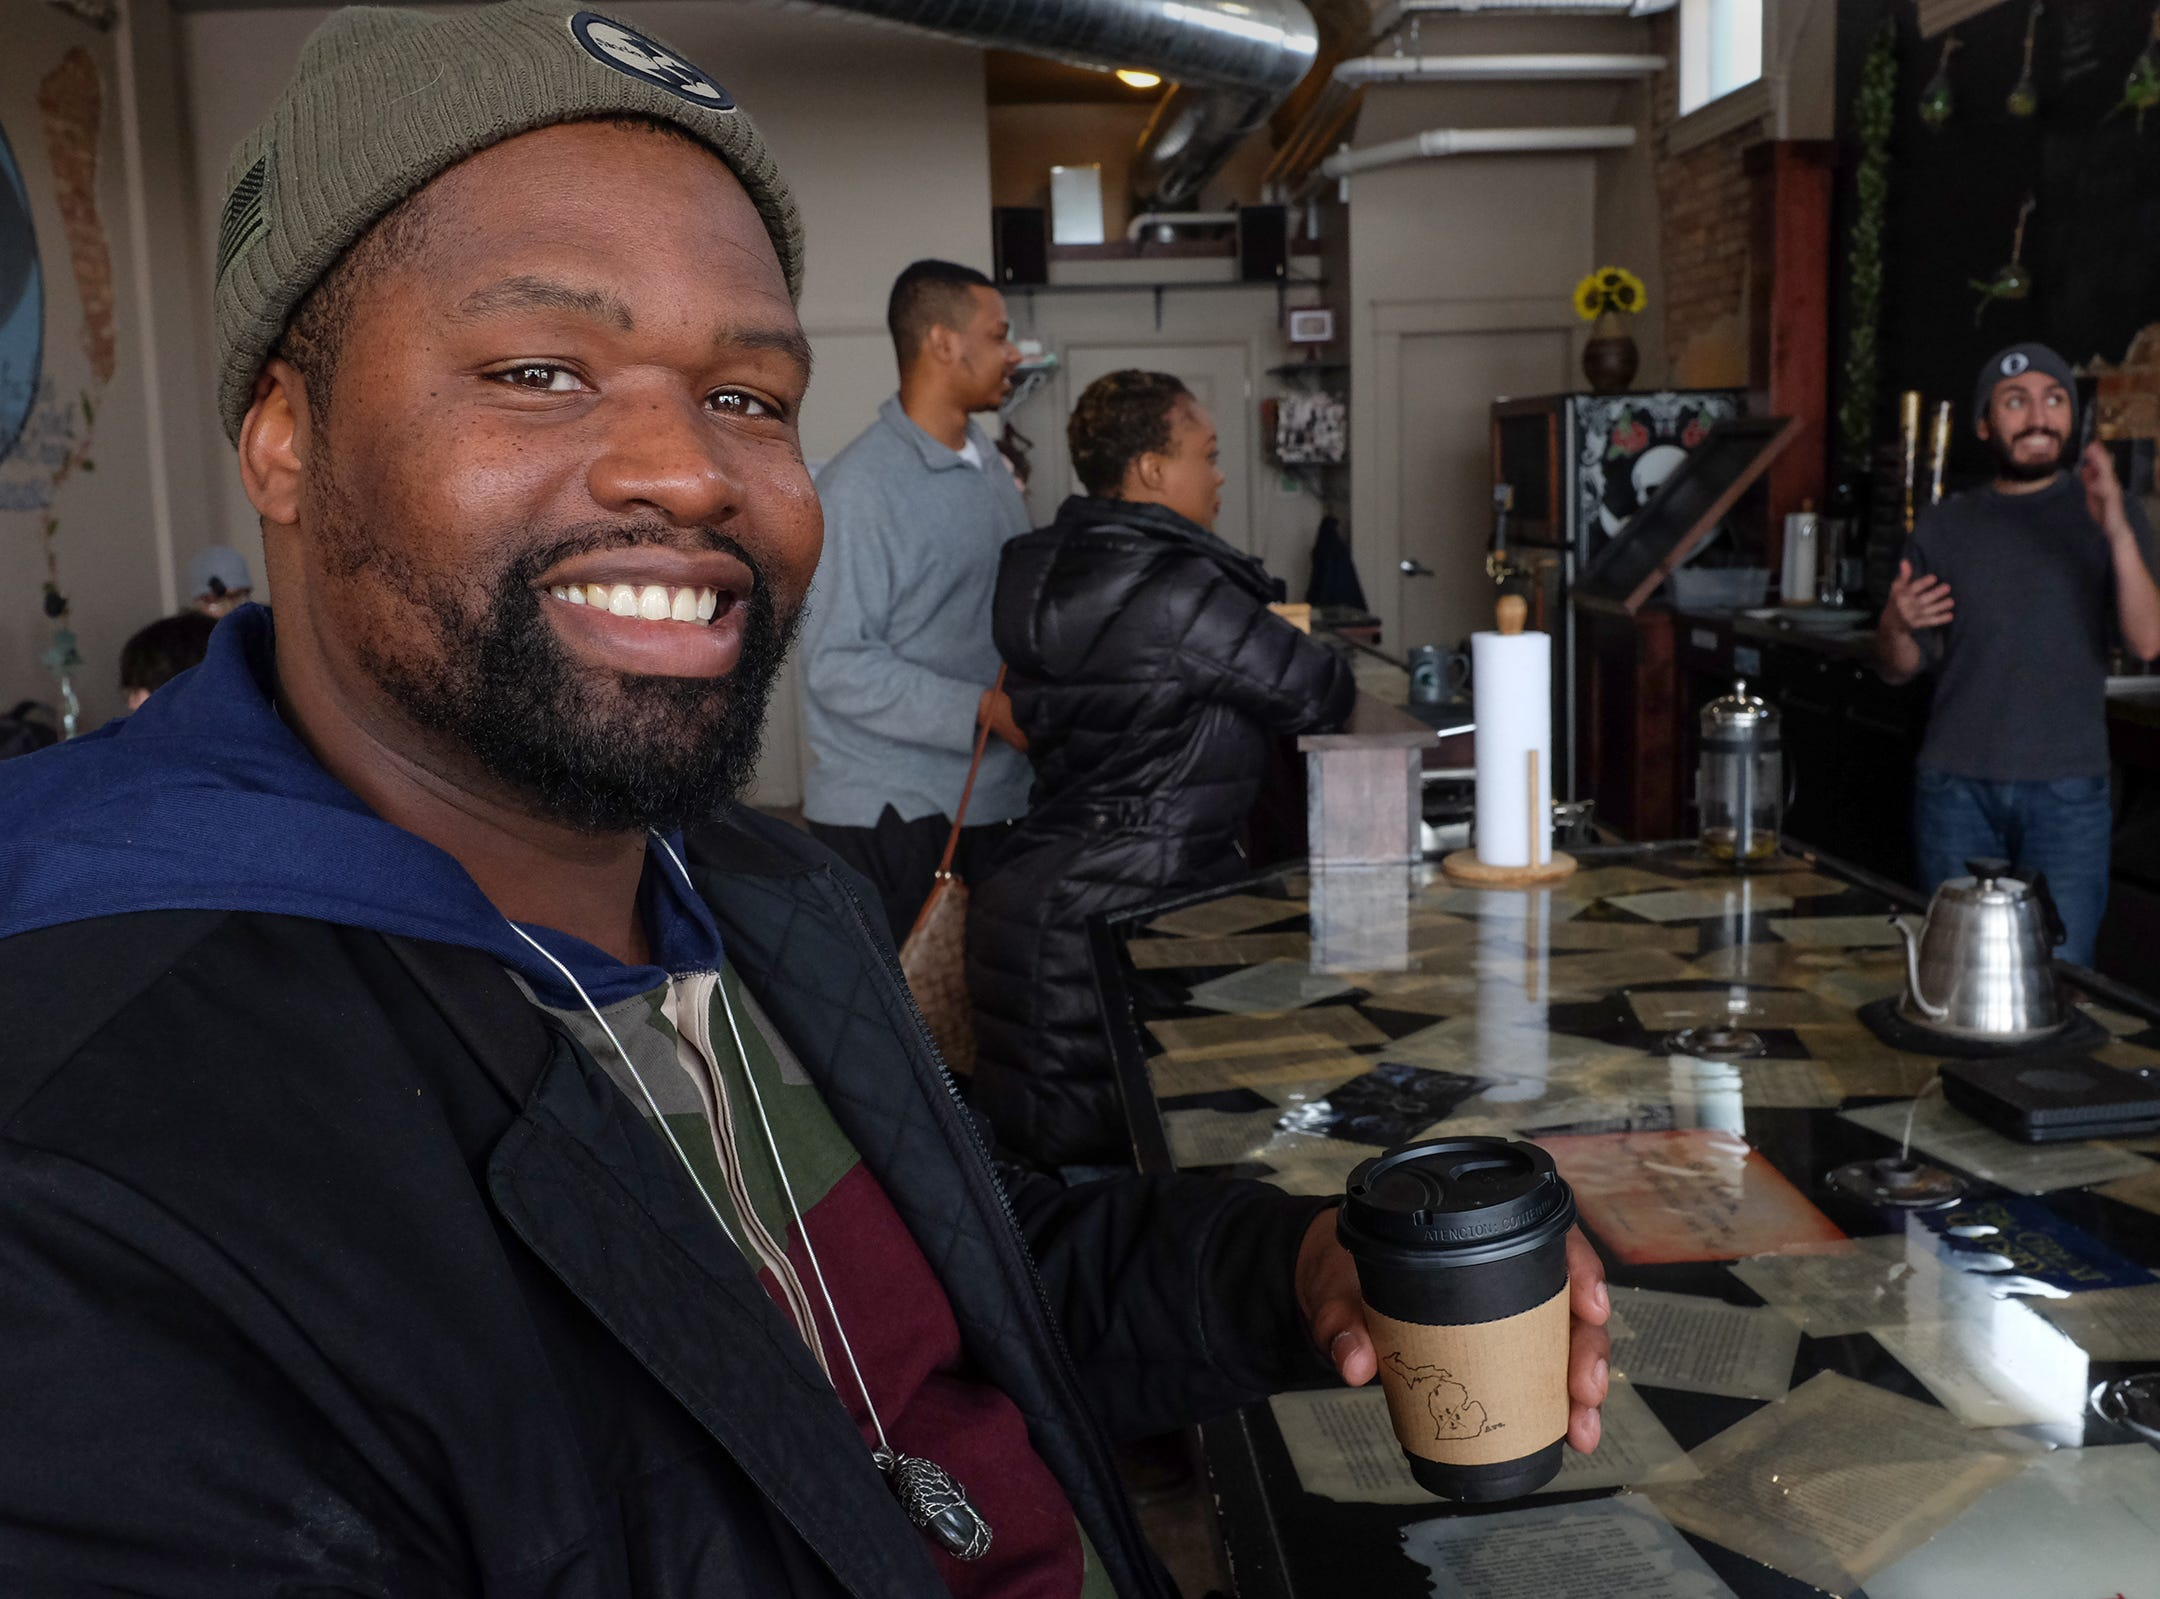 Canaan Johnson, a self-proclaimed coffee connoiseur from Lansing is a regular at The Crafted Bean and enjoys many of the specialty drinks including the Blue Suede consisting of expresso, chocolate, blueberry, grass-fed butter, and raw honey with a drop or two of coconut oil.